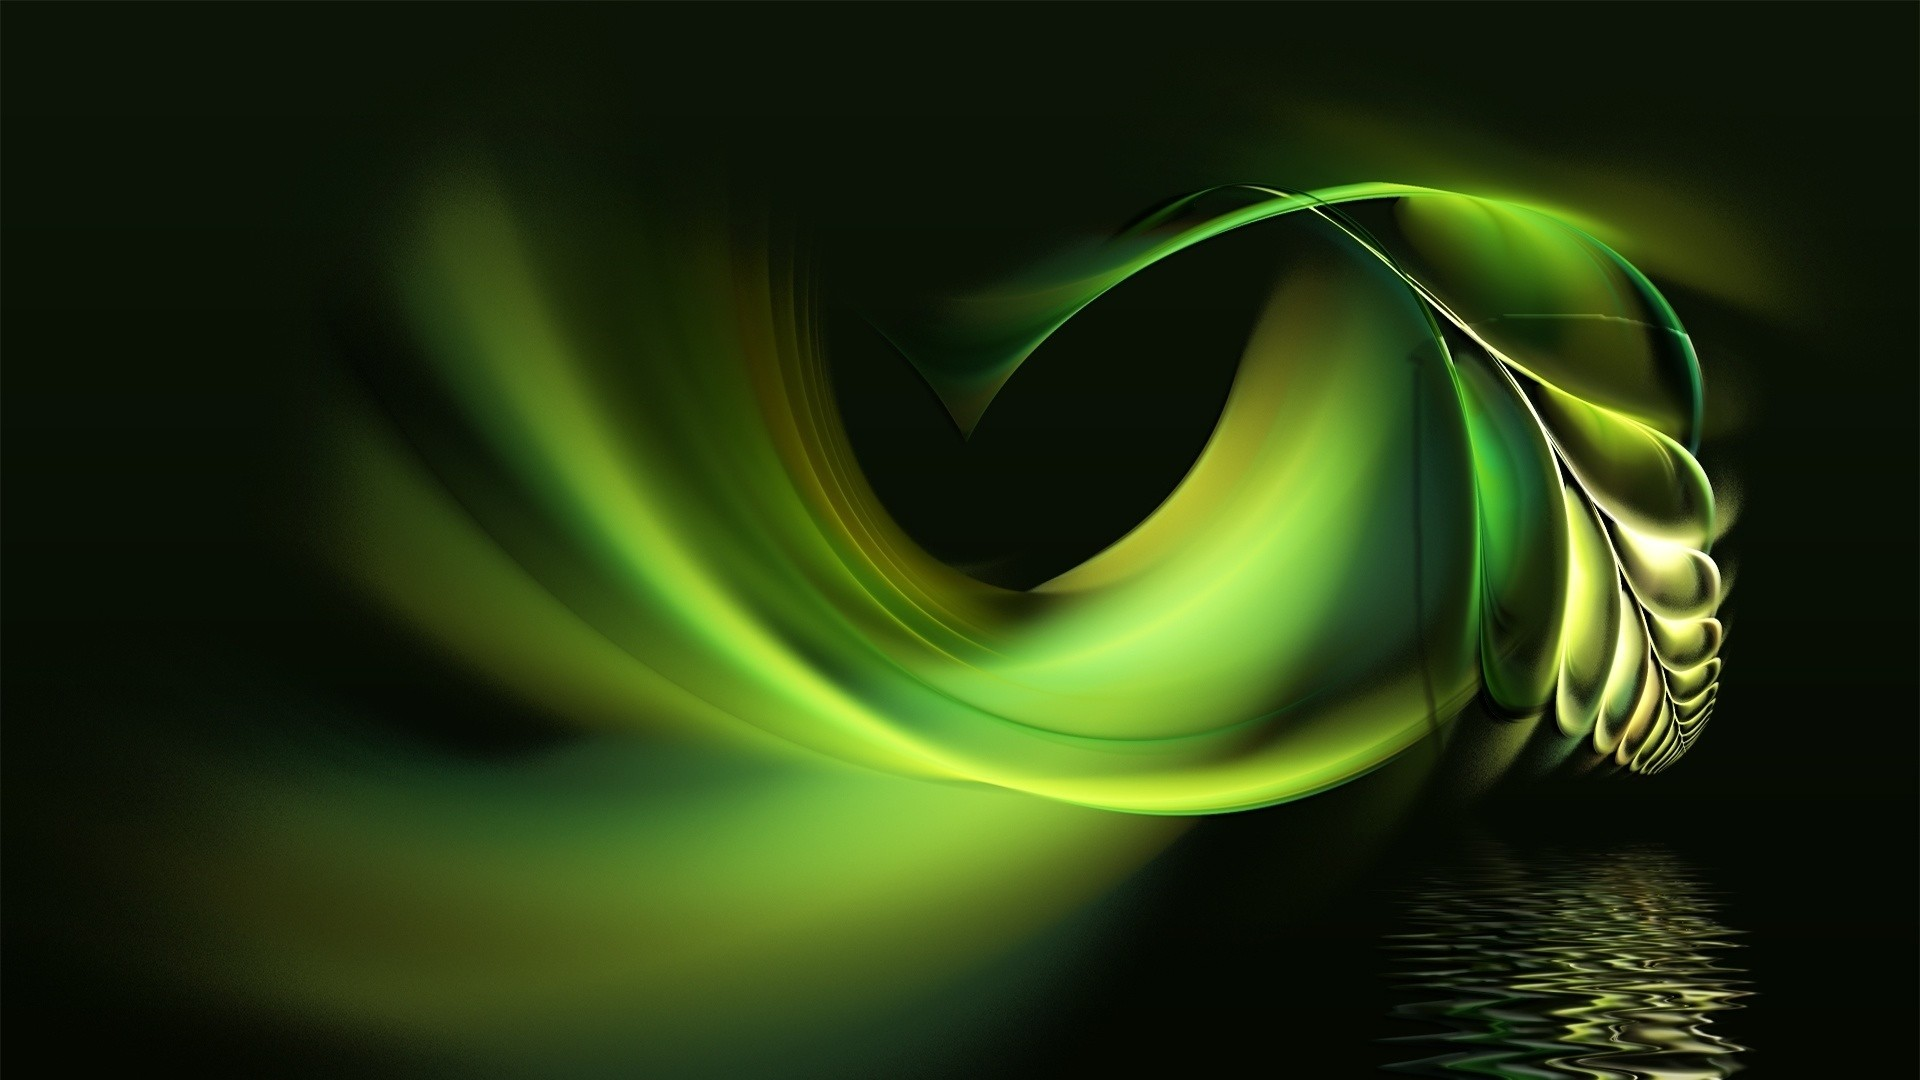 Preview wallpaper black, white, abstract, pen, water, green 1920×1080